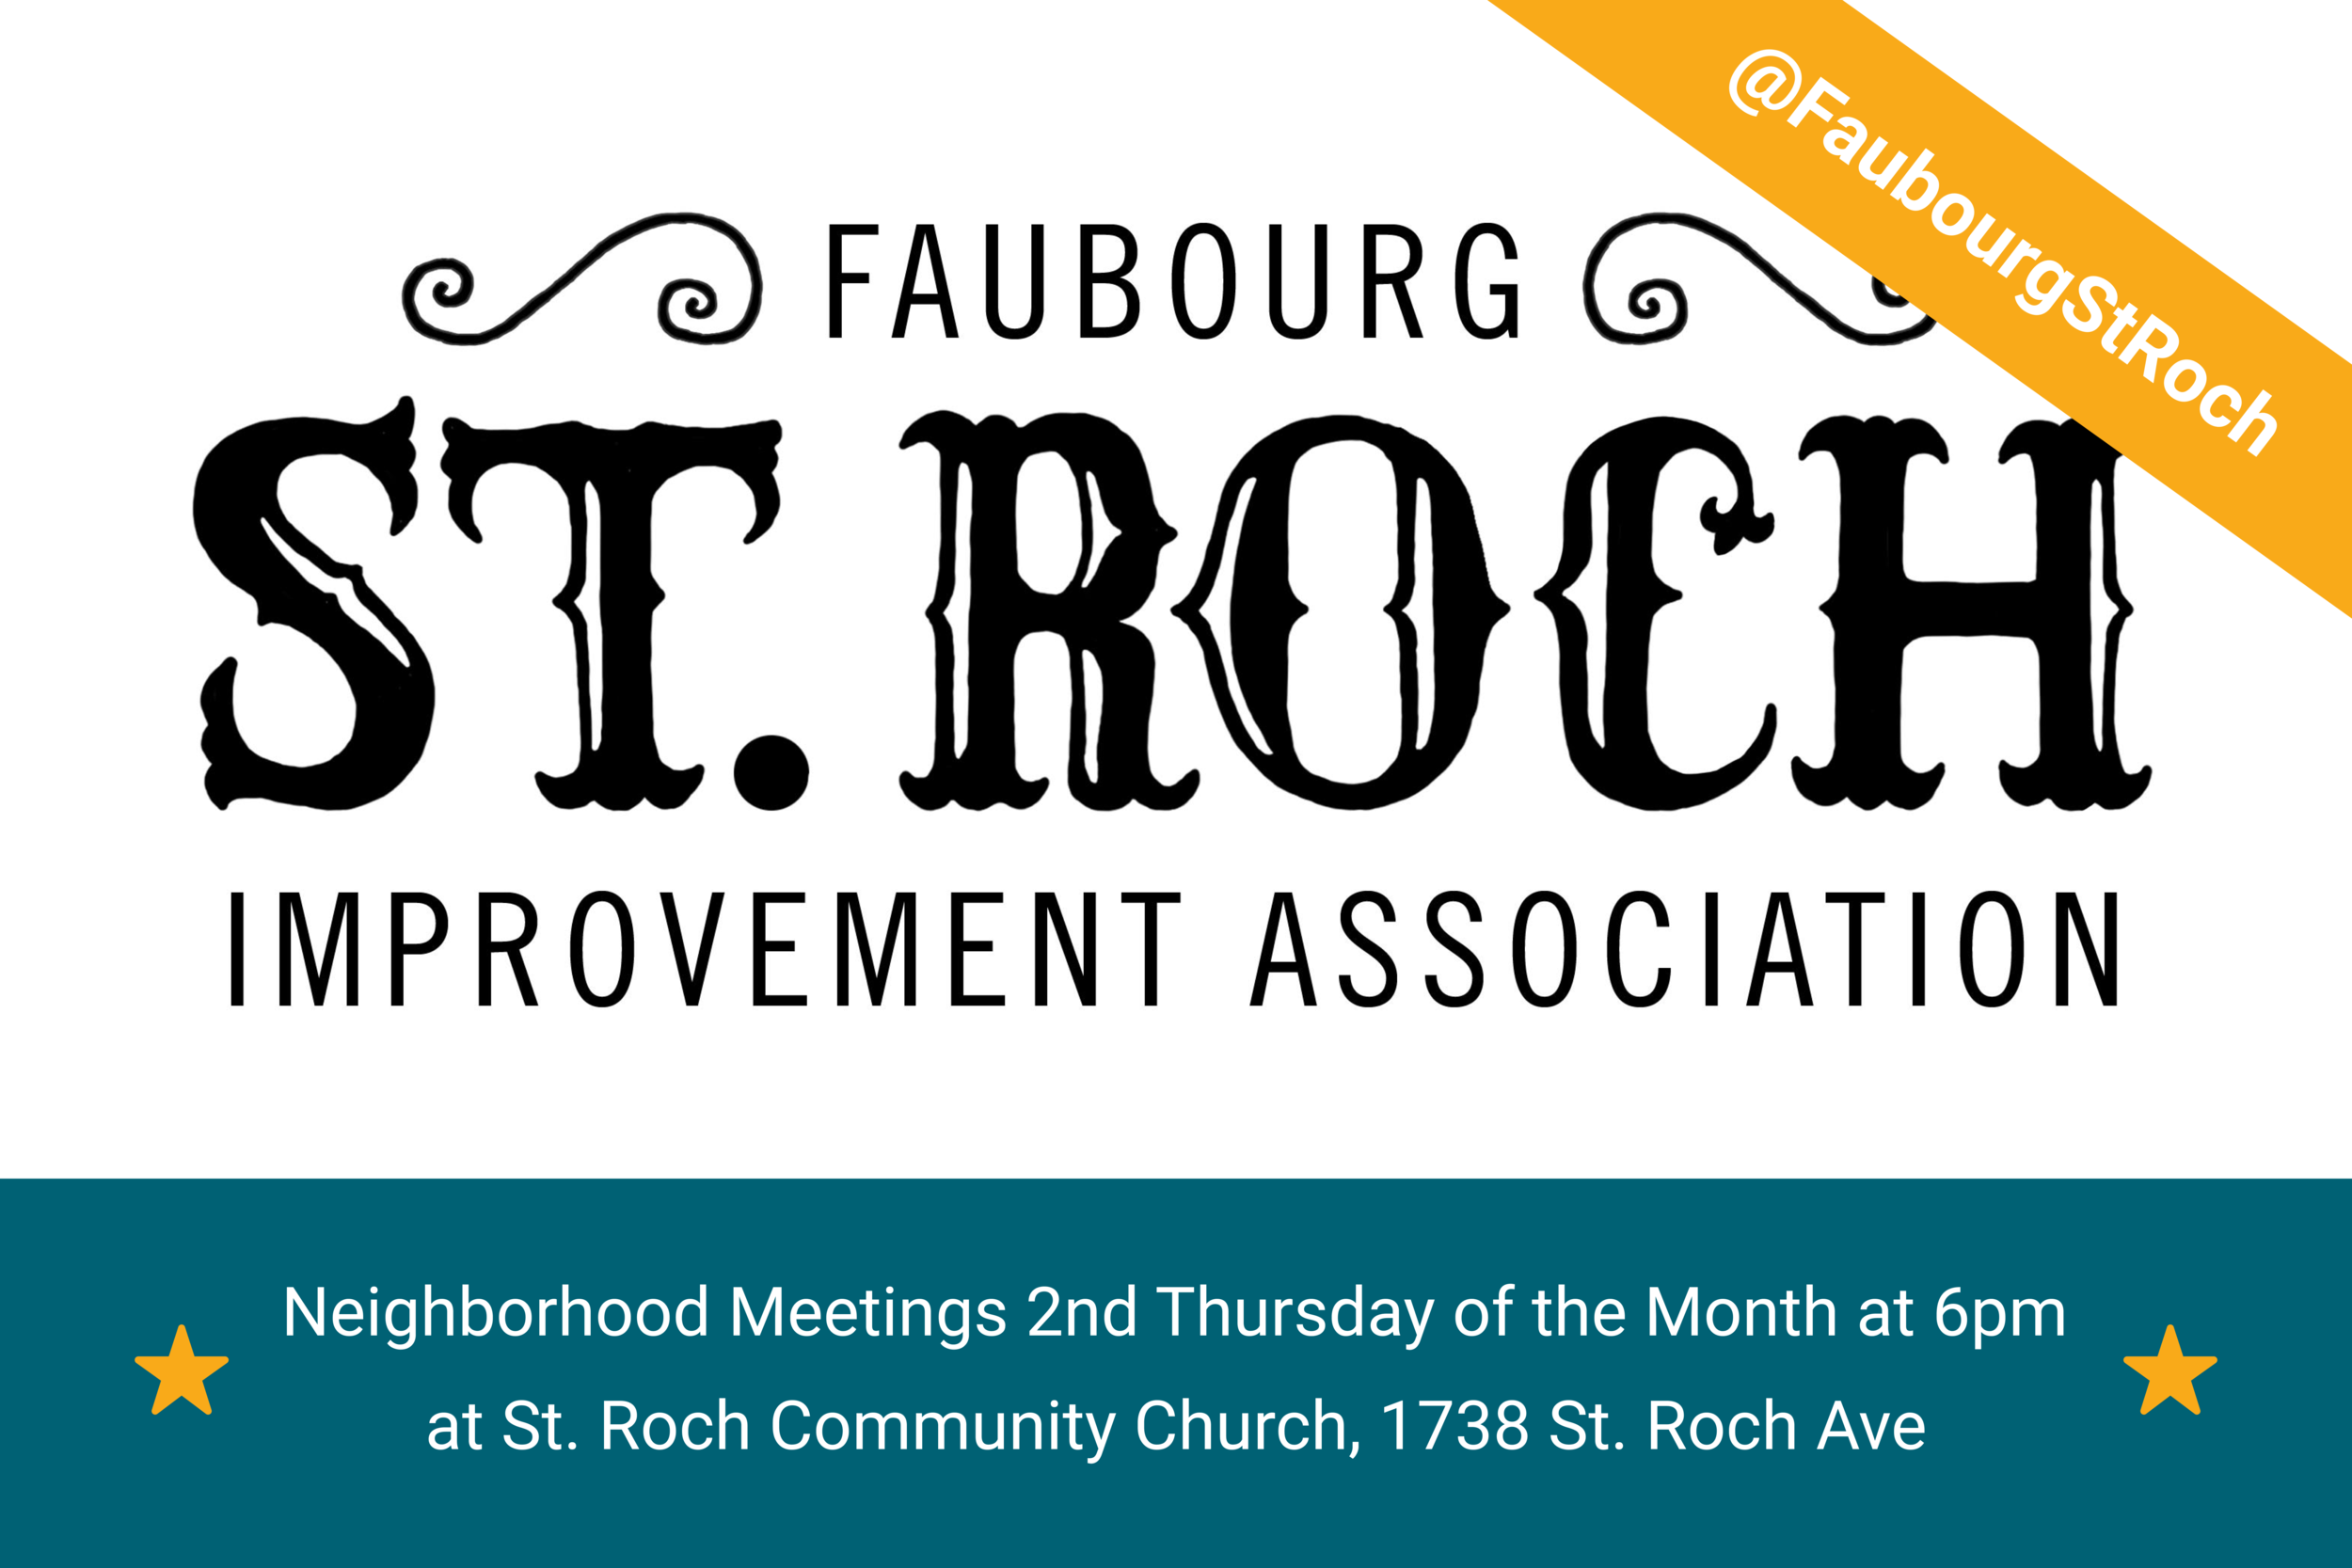 Receive a St. Roch yard sign when you donate  $5  or more.